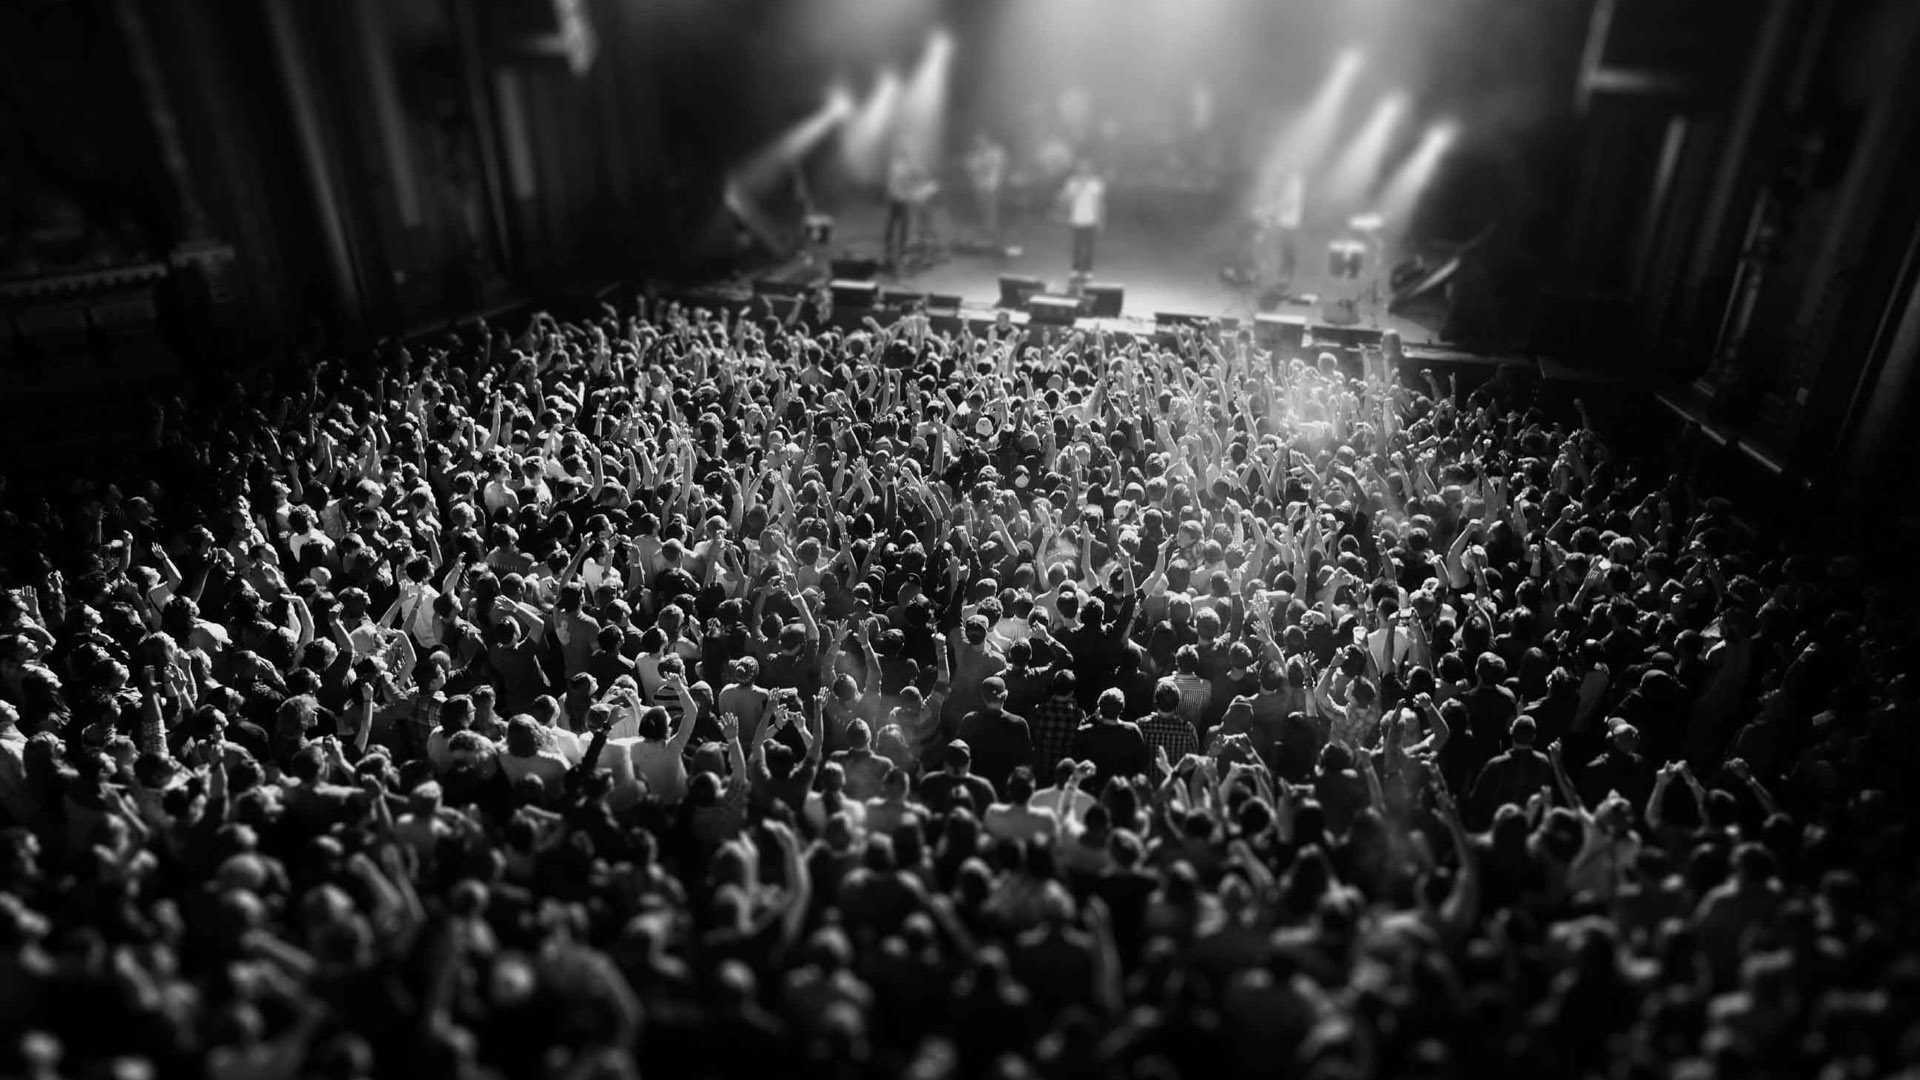 Gallery of Concert Background Hd